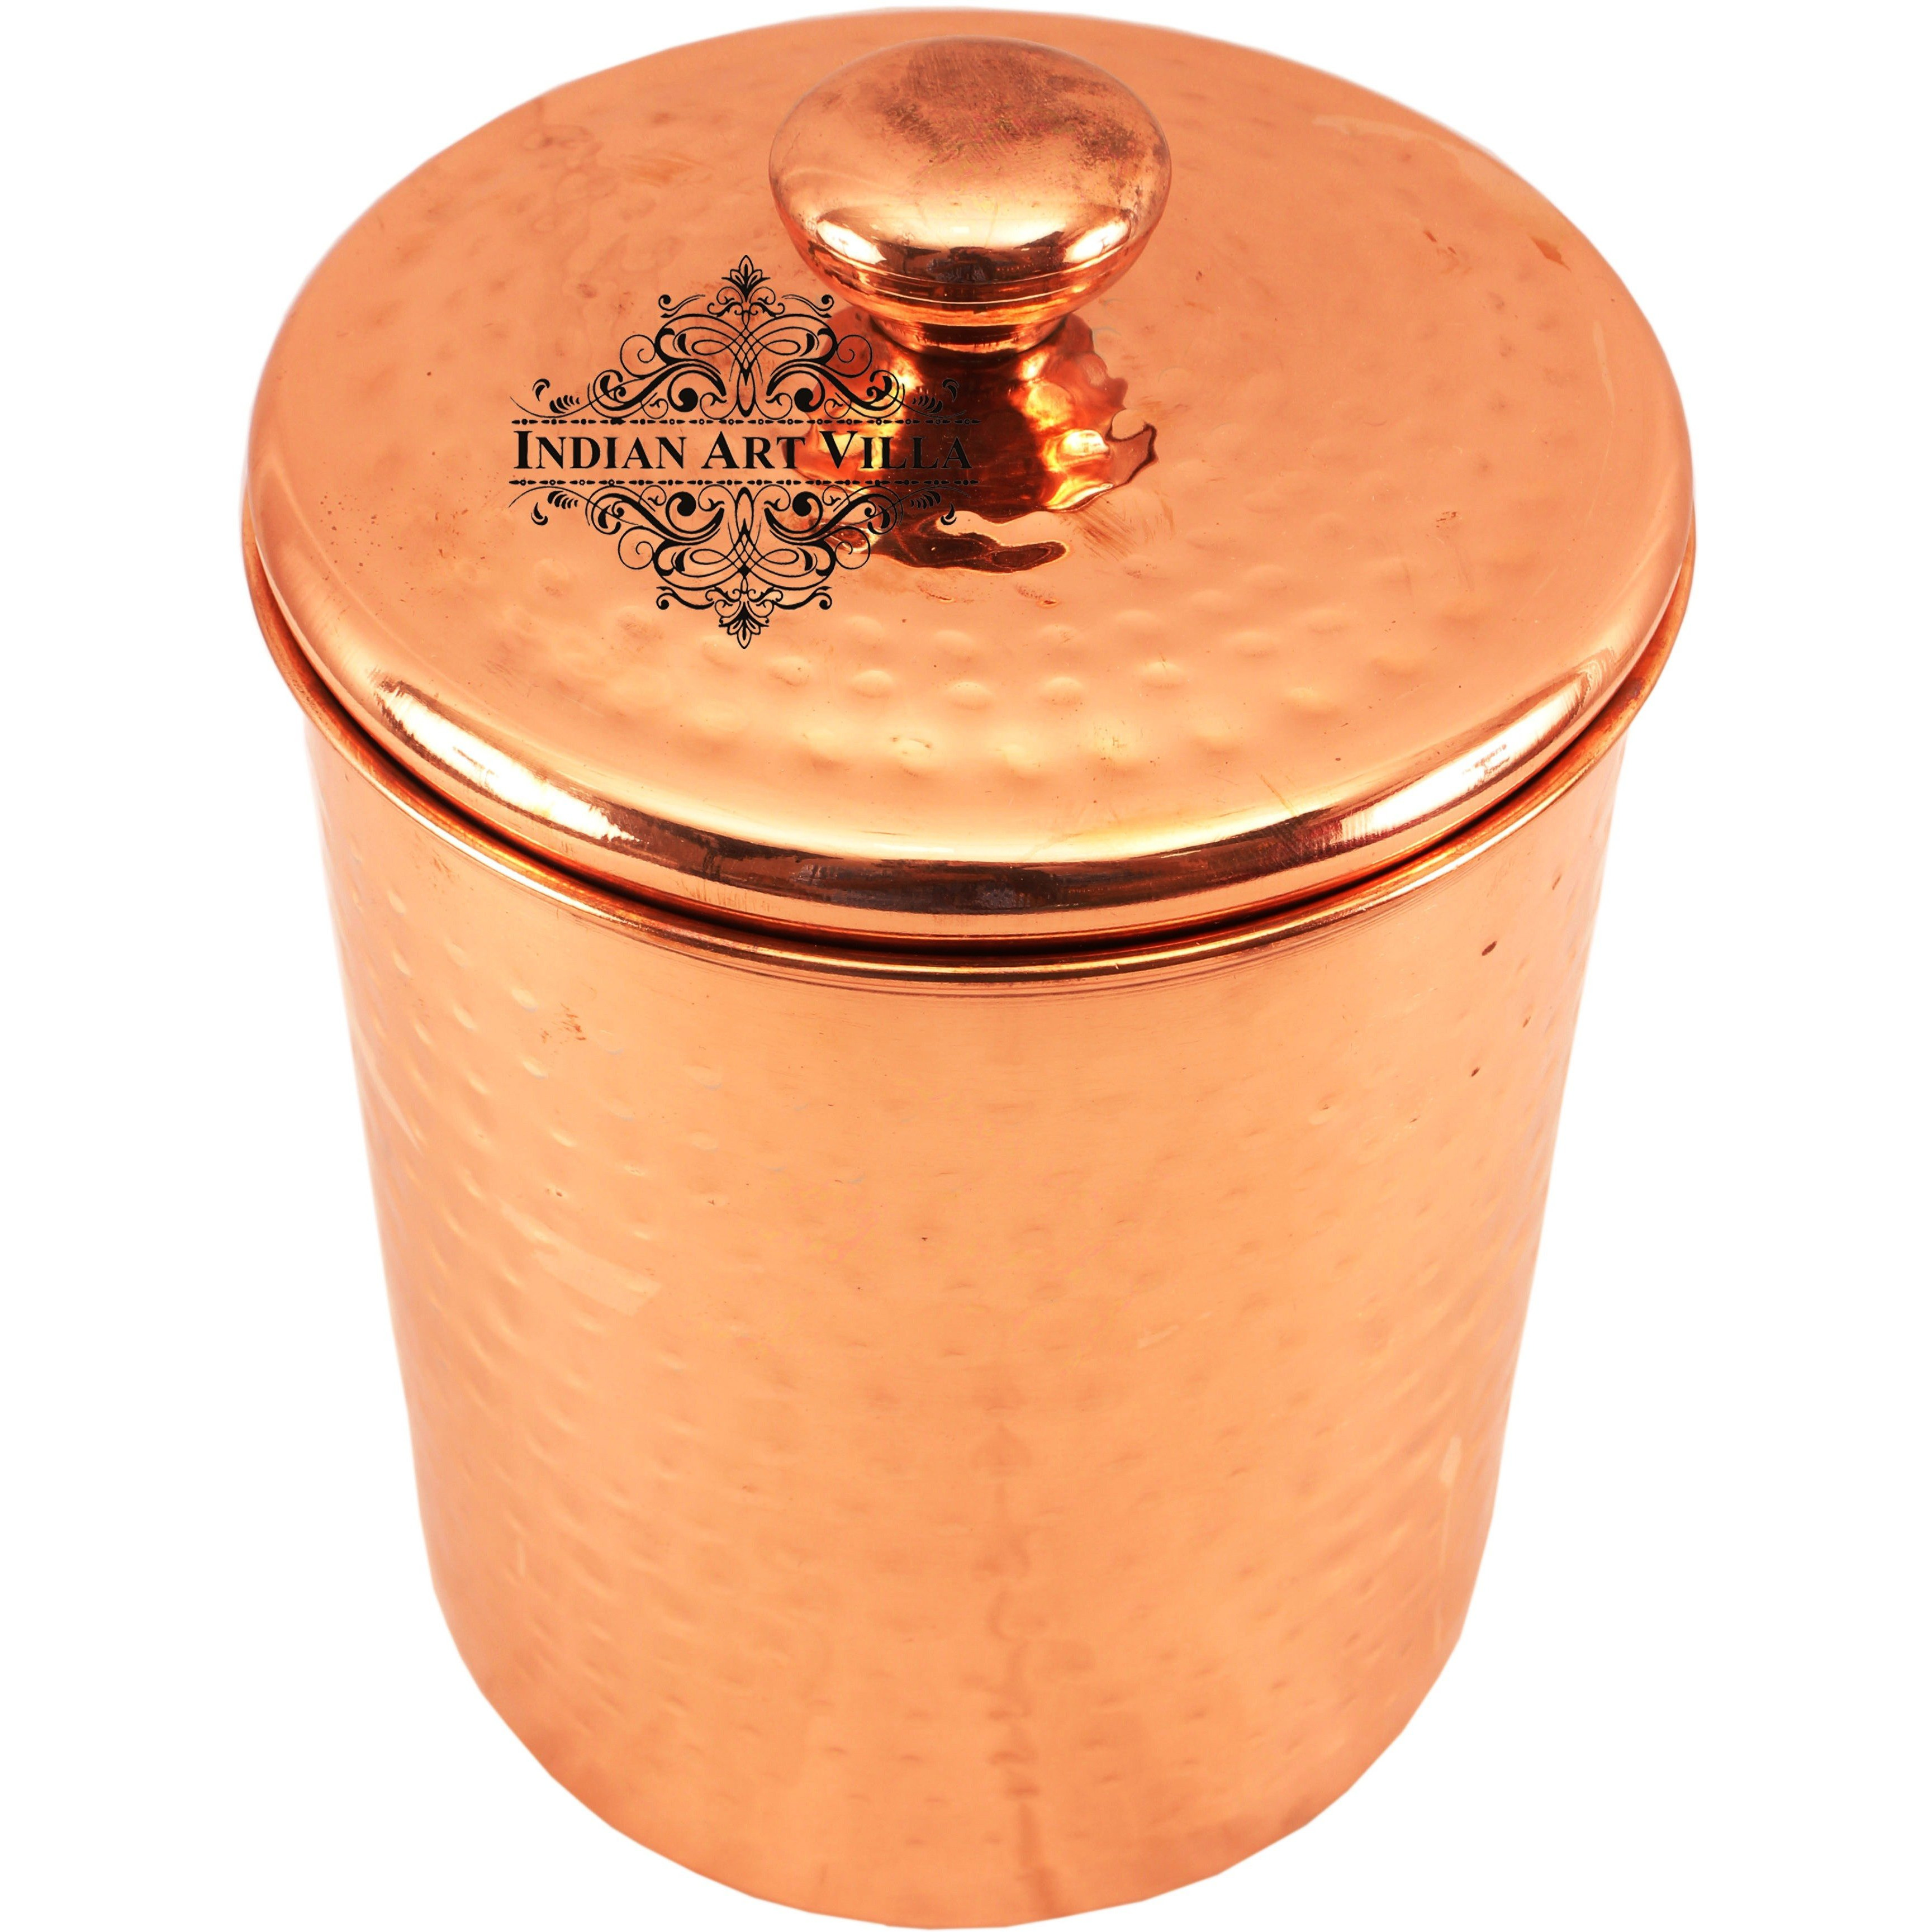 Indian Art Villa Steel Copper Plated Storage Box with Lid 72 Oz